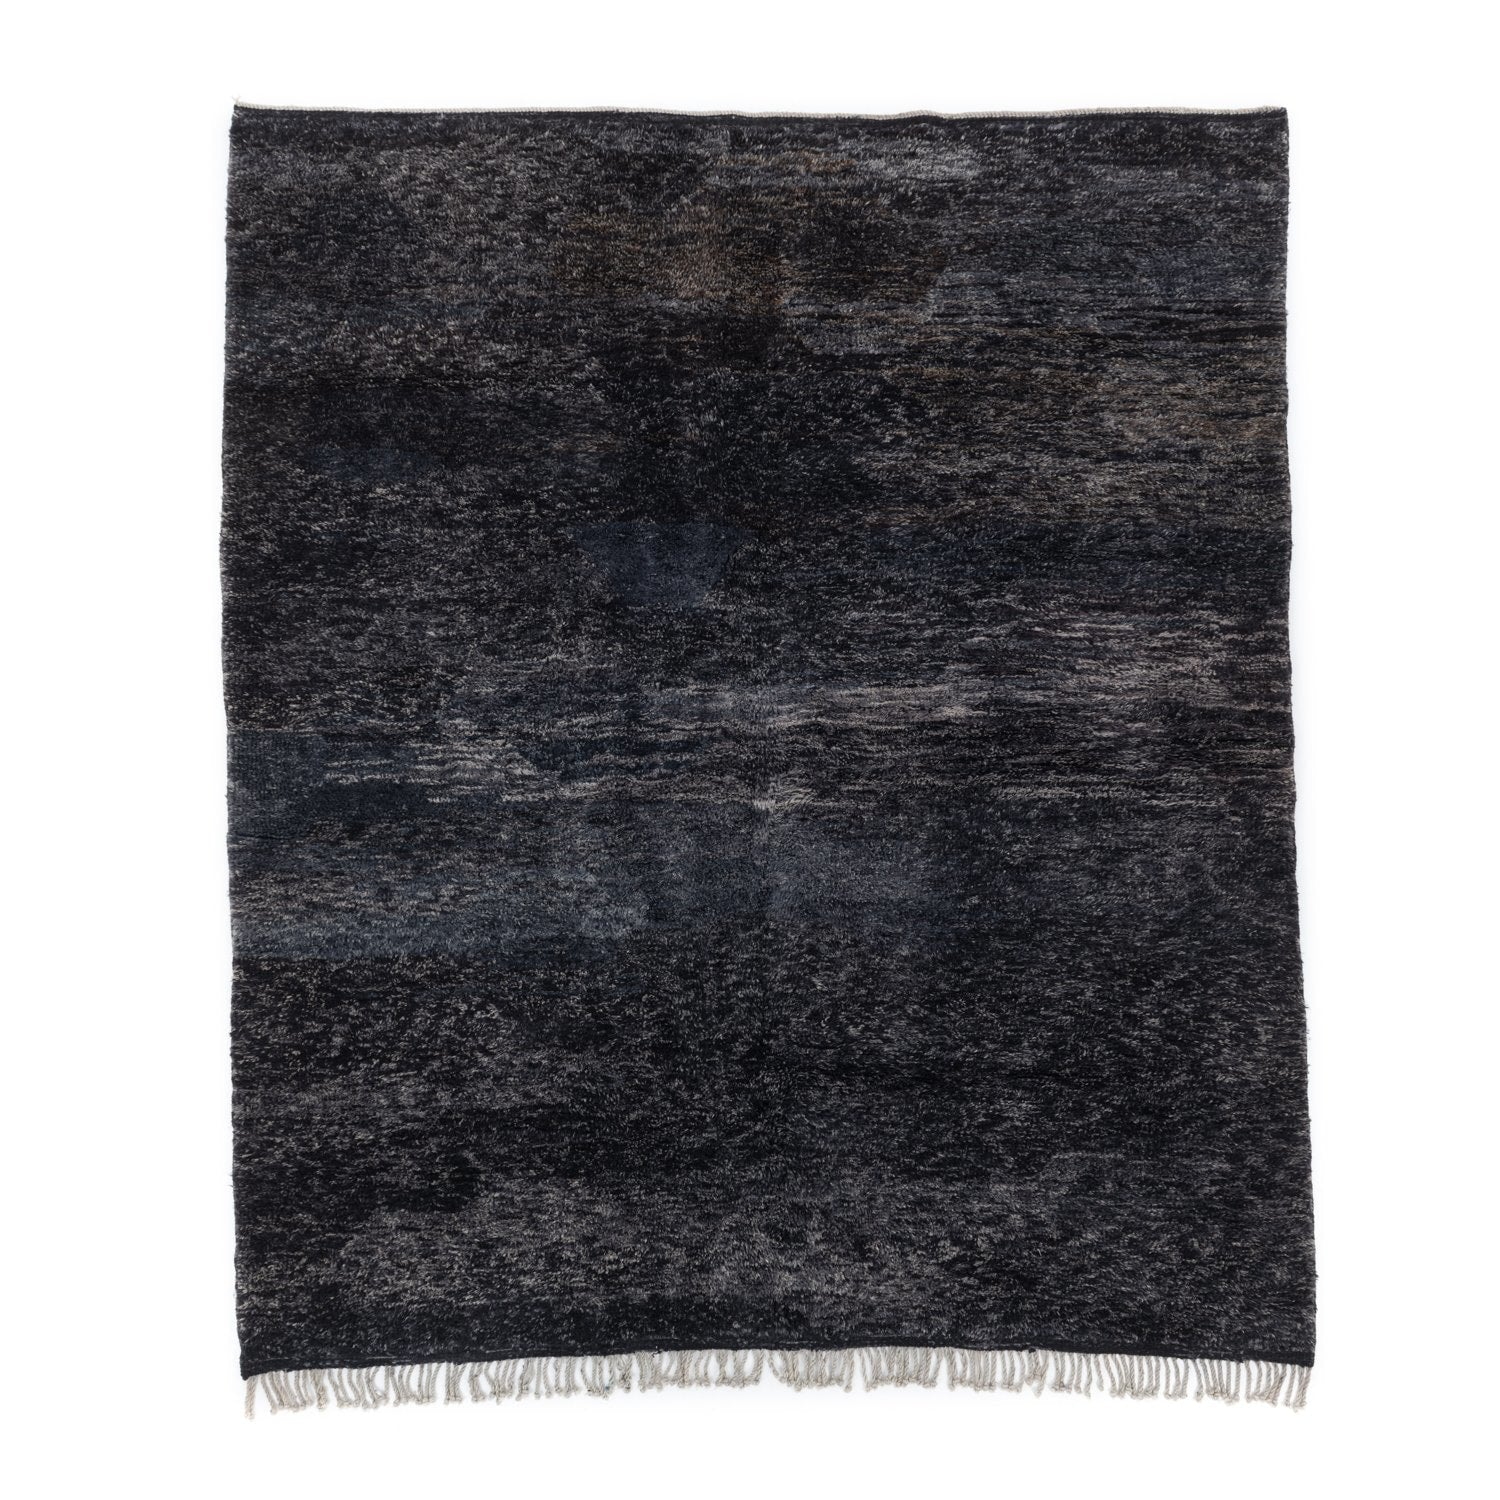 Luxury Mrirt rug 8.7 x 10 ft / 264 x 306 cm - Mrirt Rug